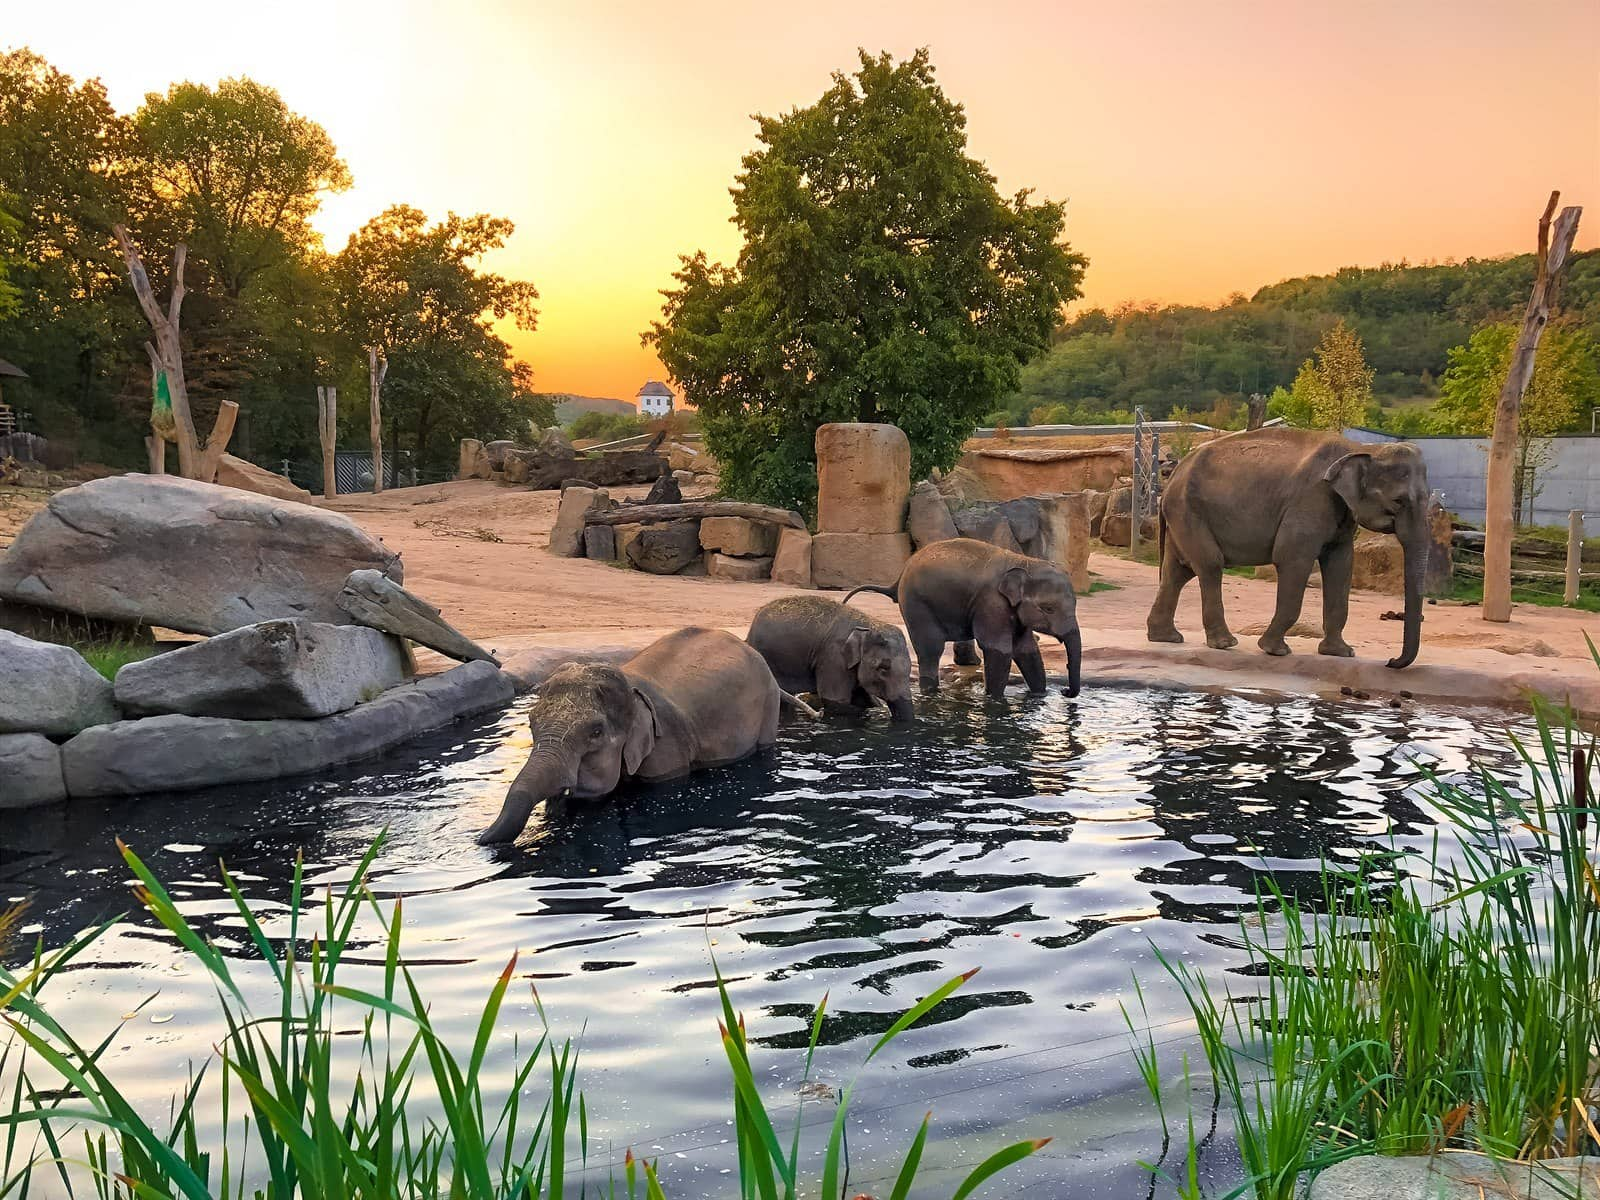 Prague Zoo expects two more elephants to be born in 2020